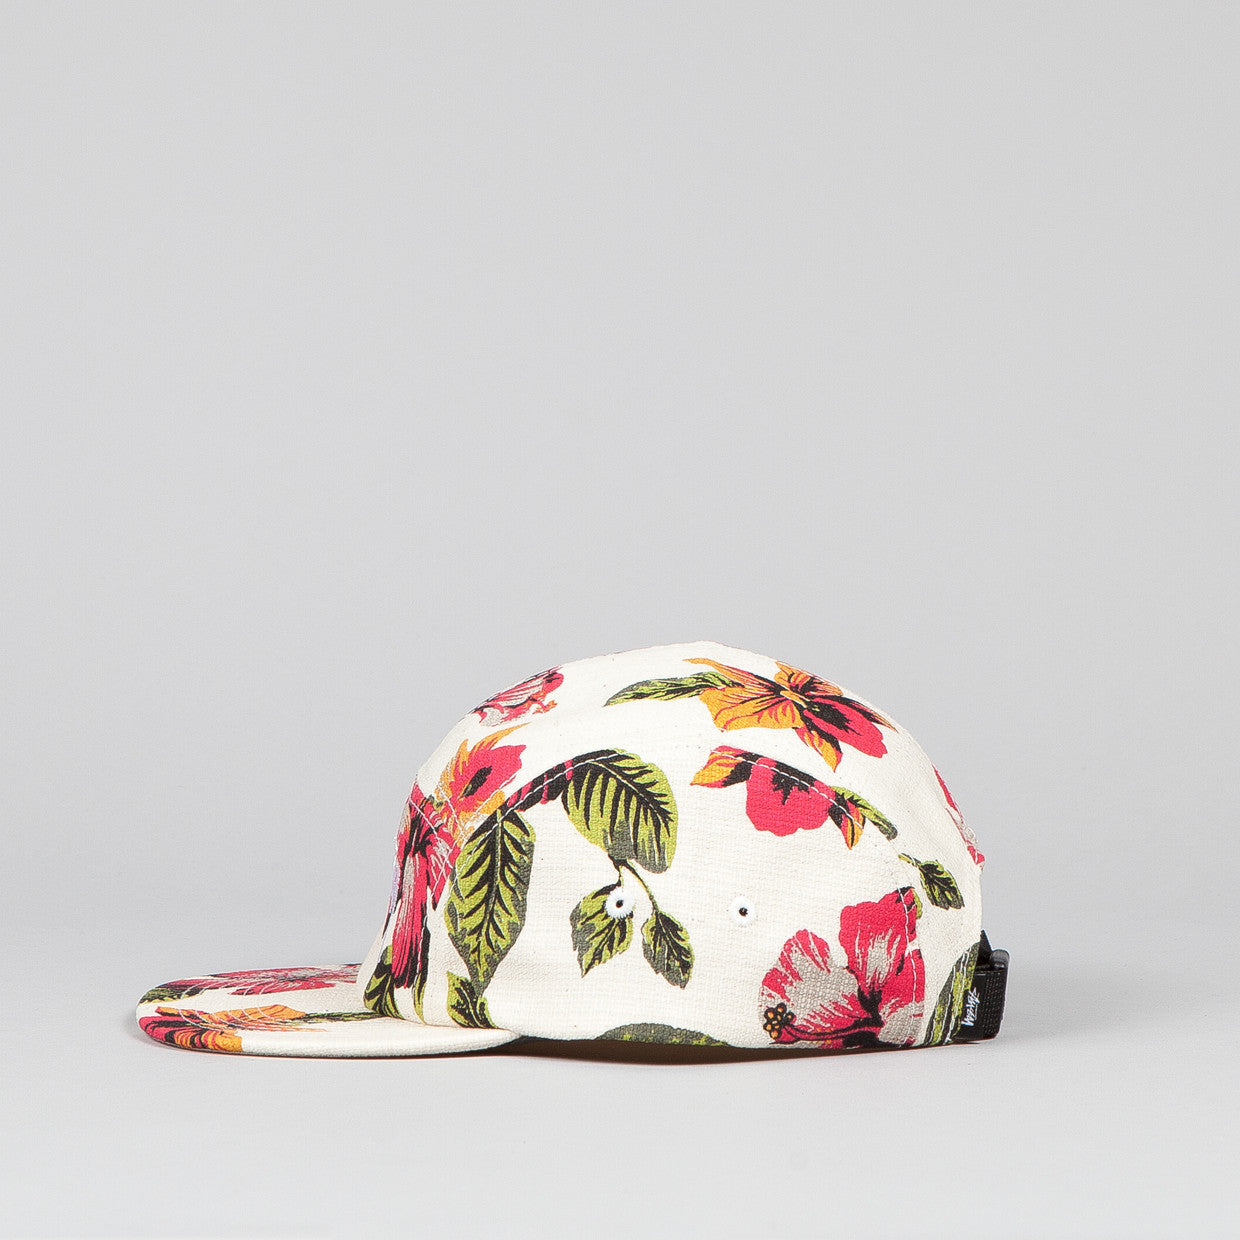 Stussy Vintage Flower Camp Cap White